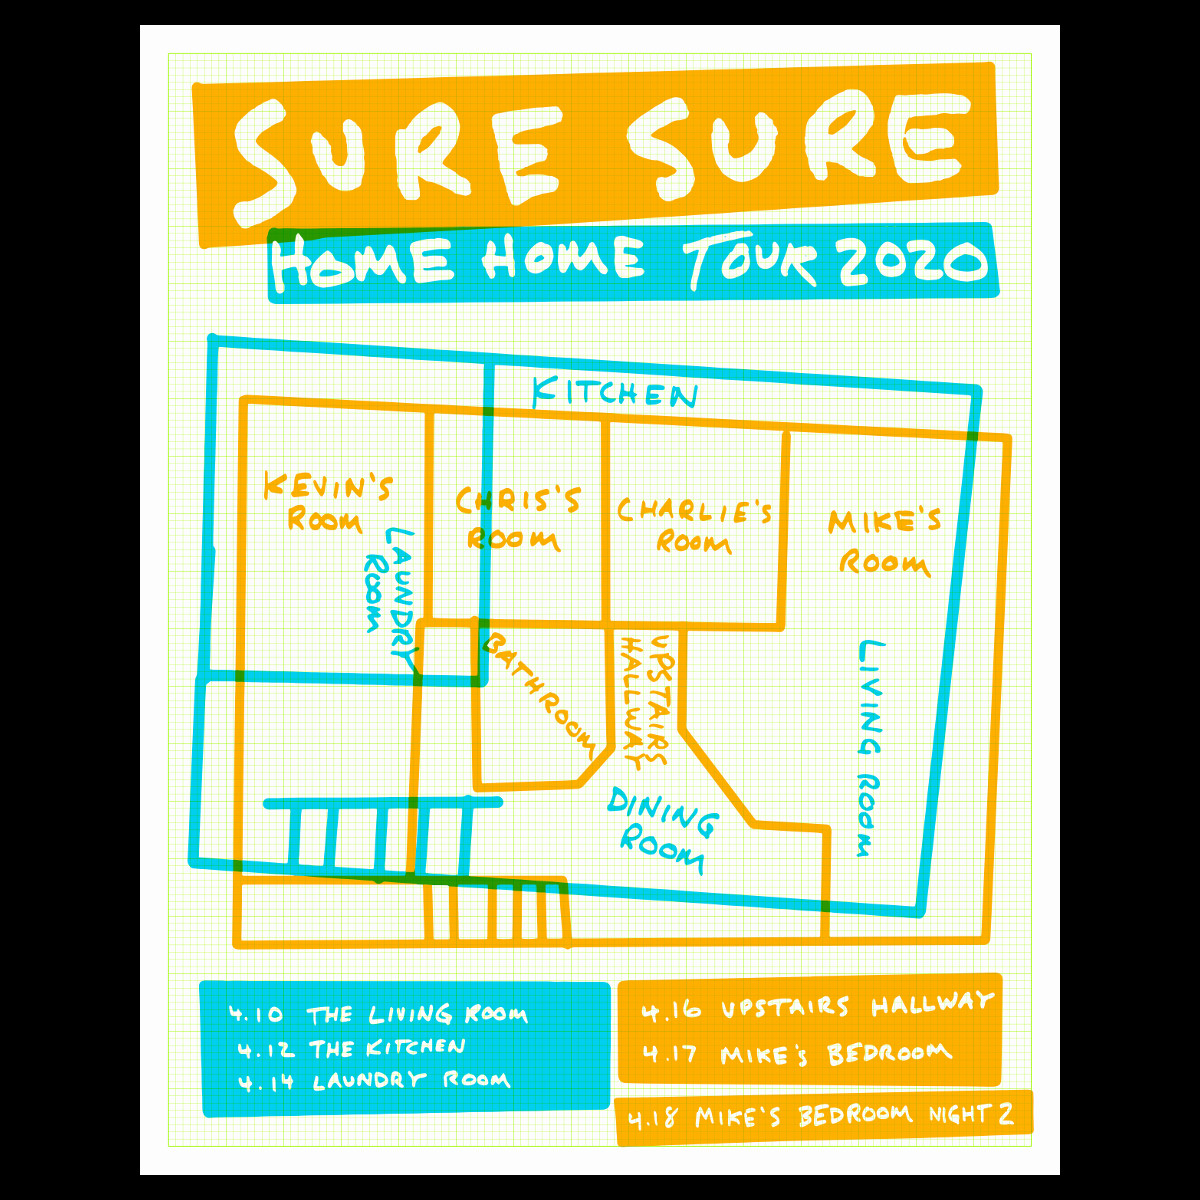 Autographed Home Home Tour Poster